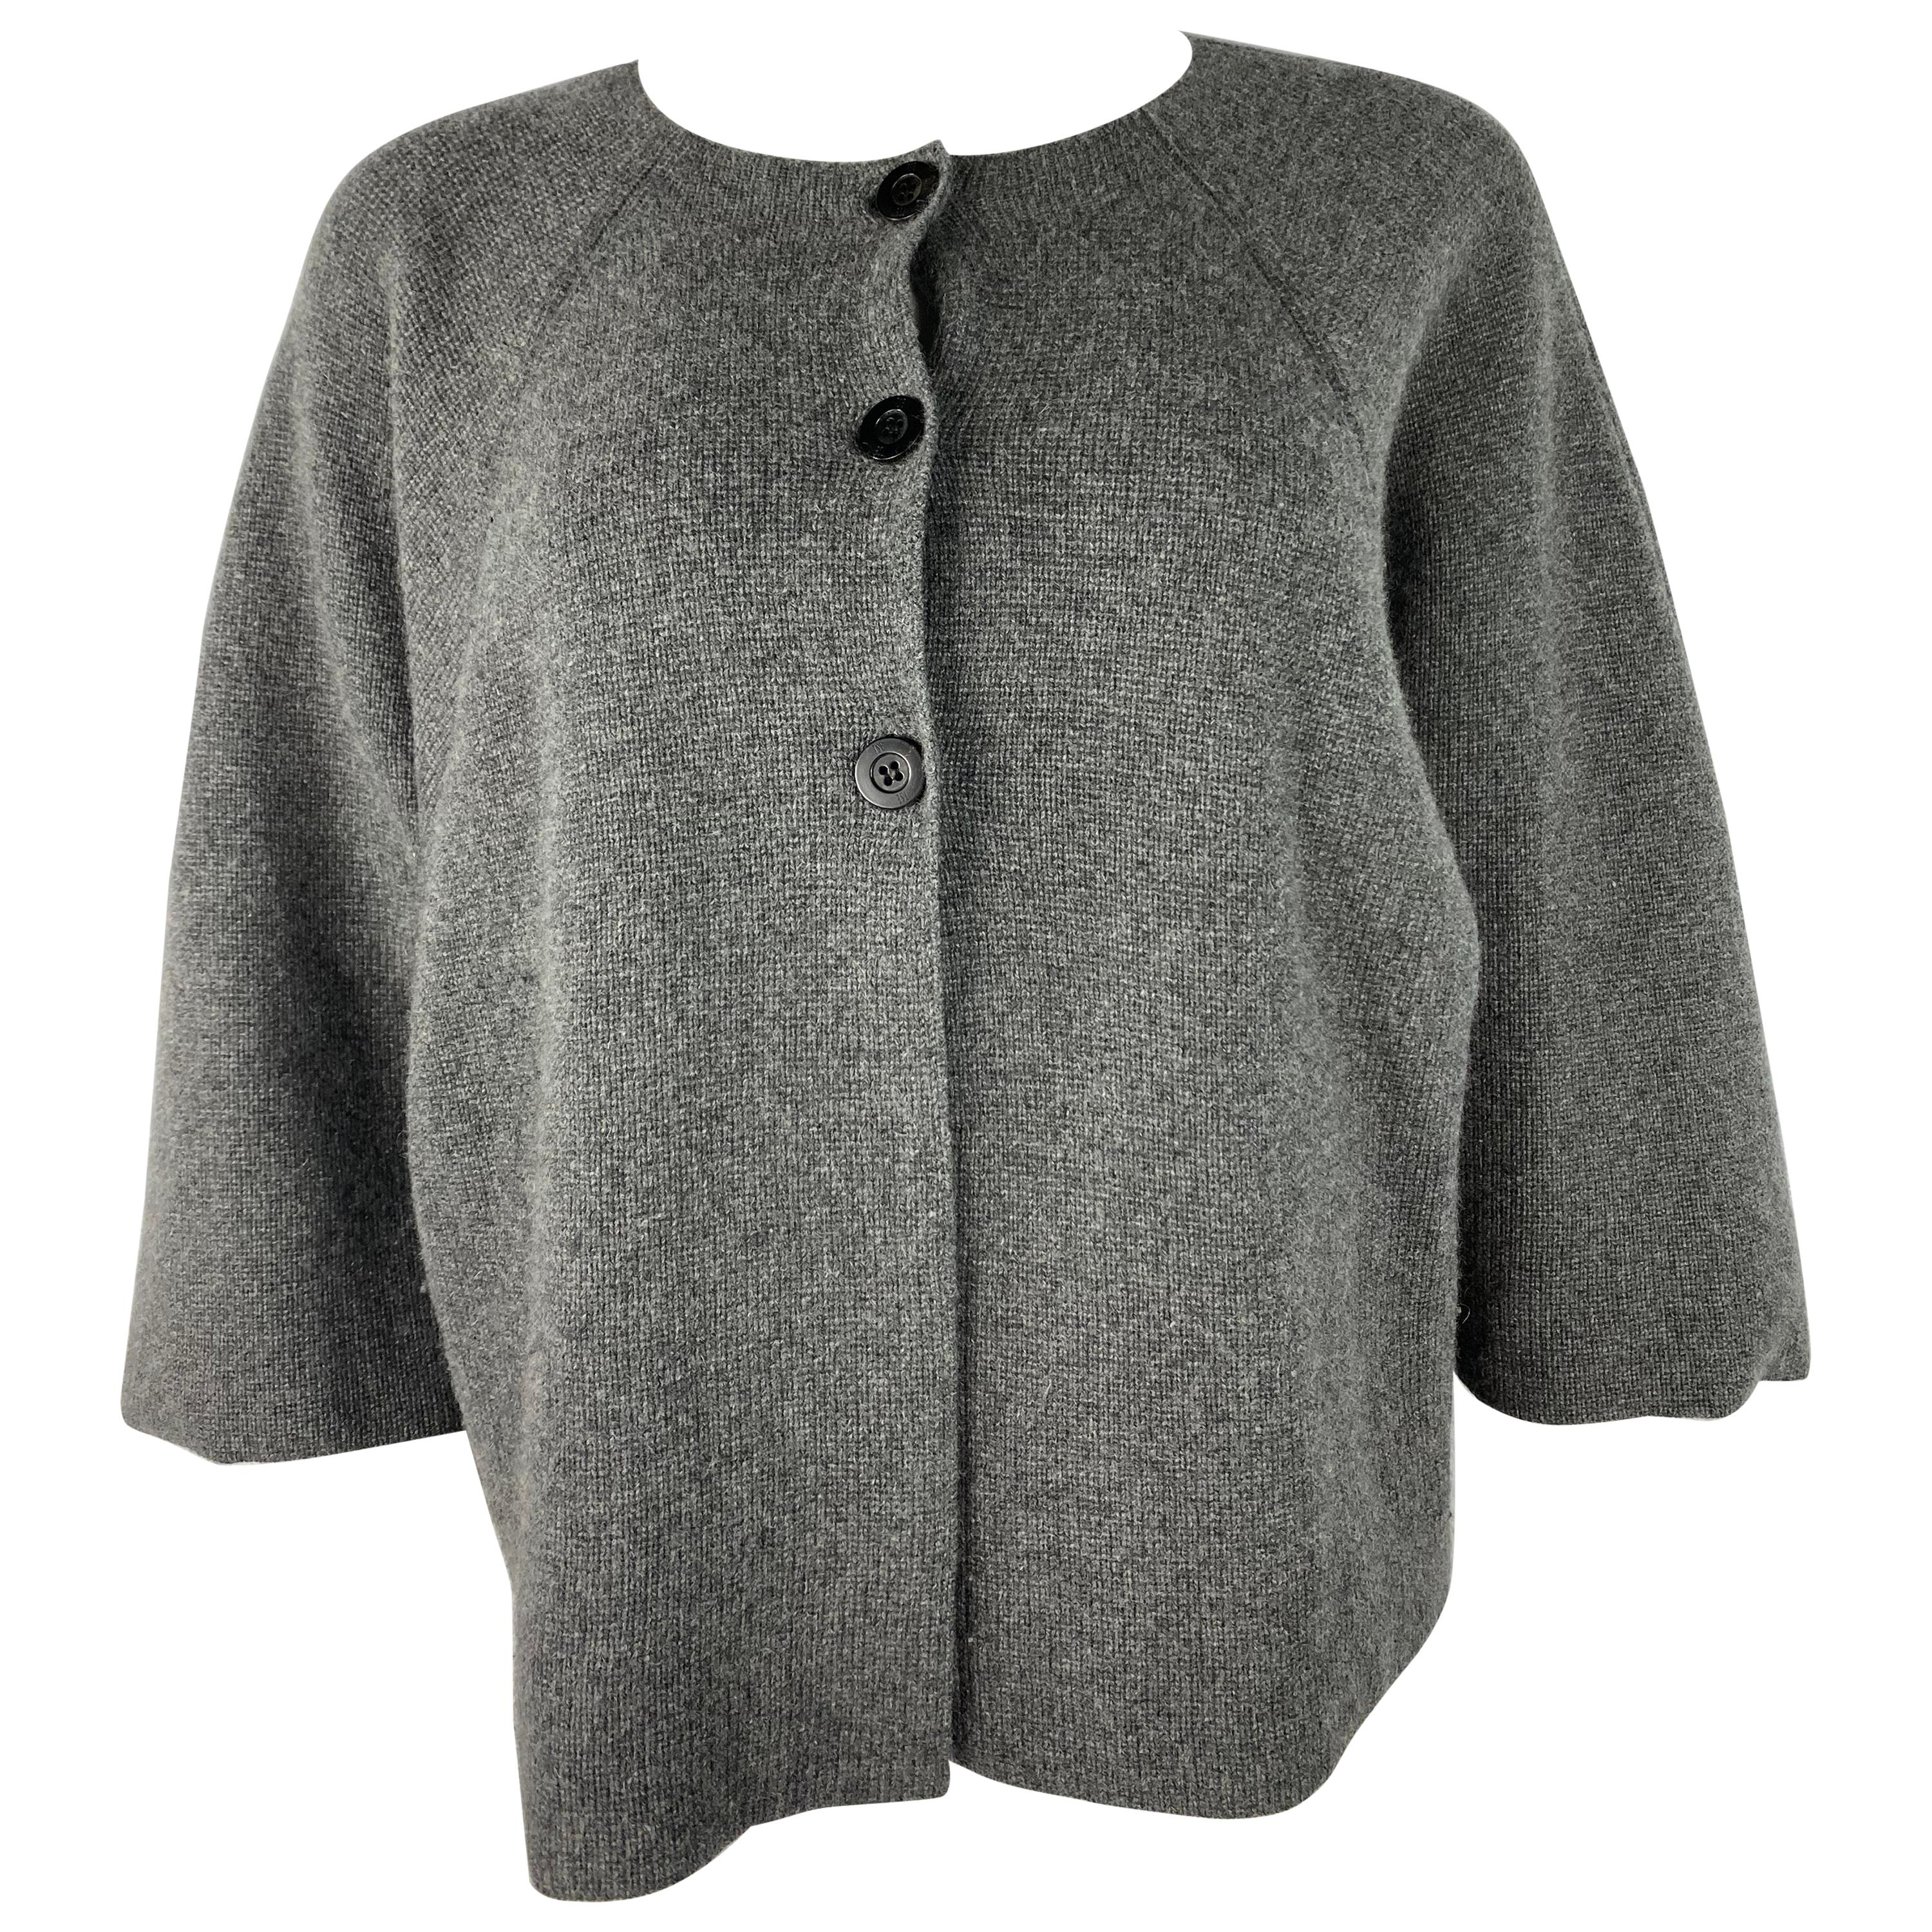 TSE Grey Cashmere Sweater Cardigan Top, Size S/M